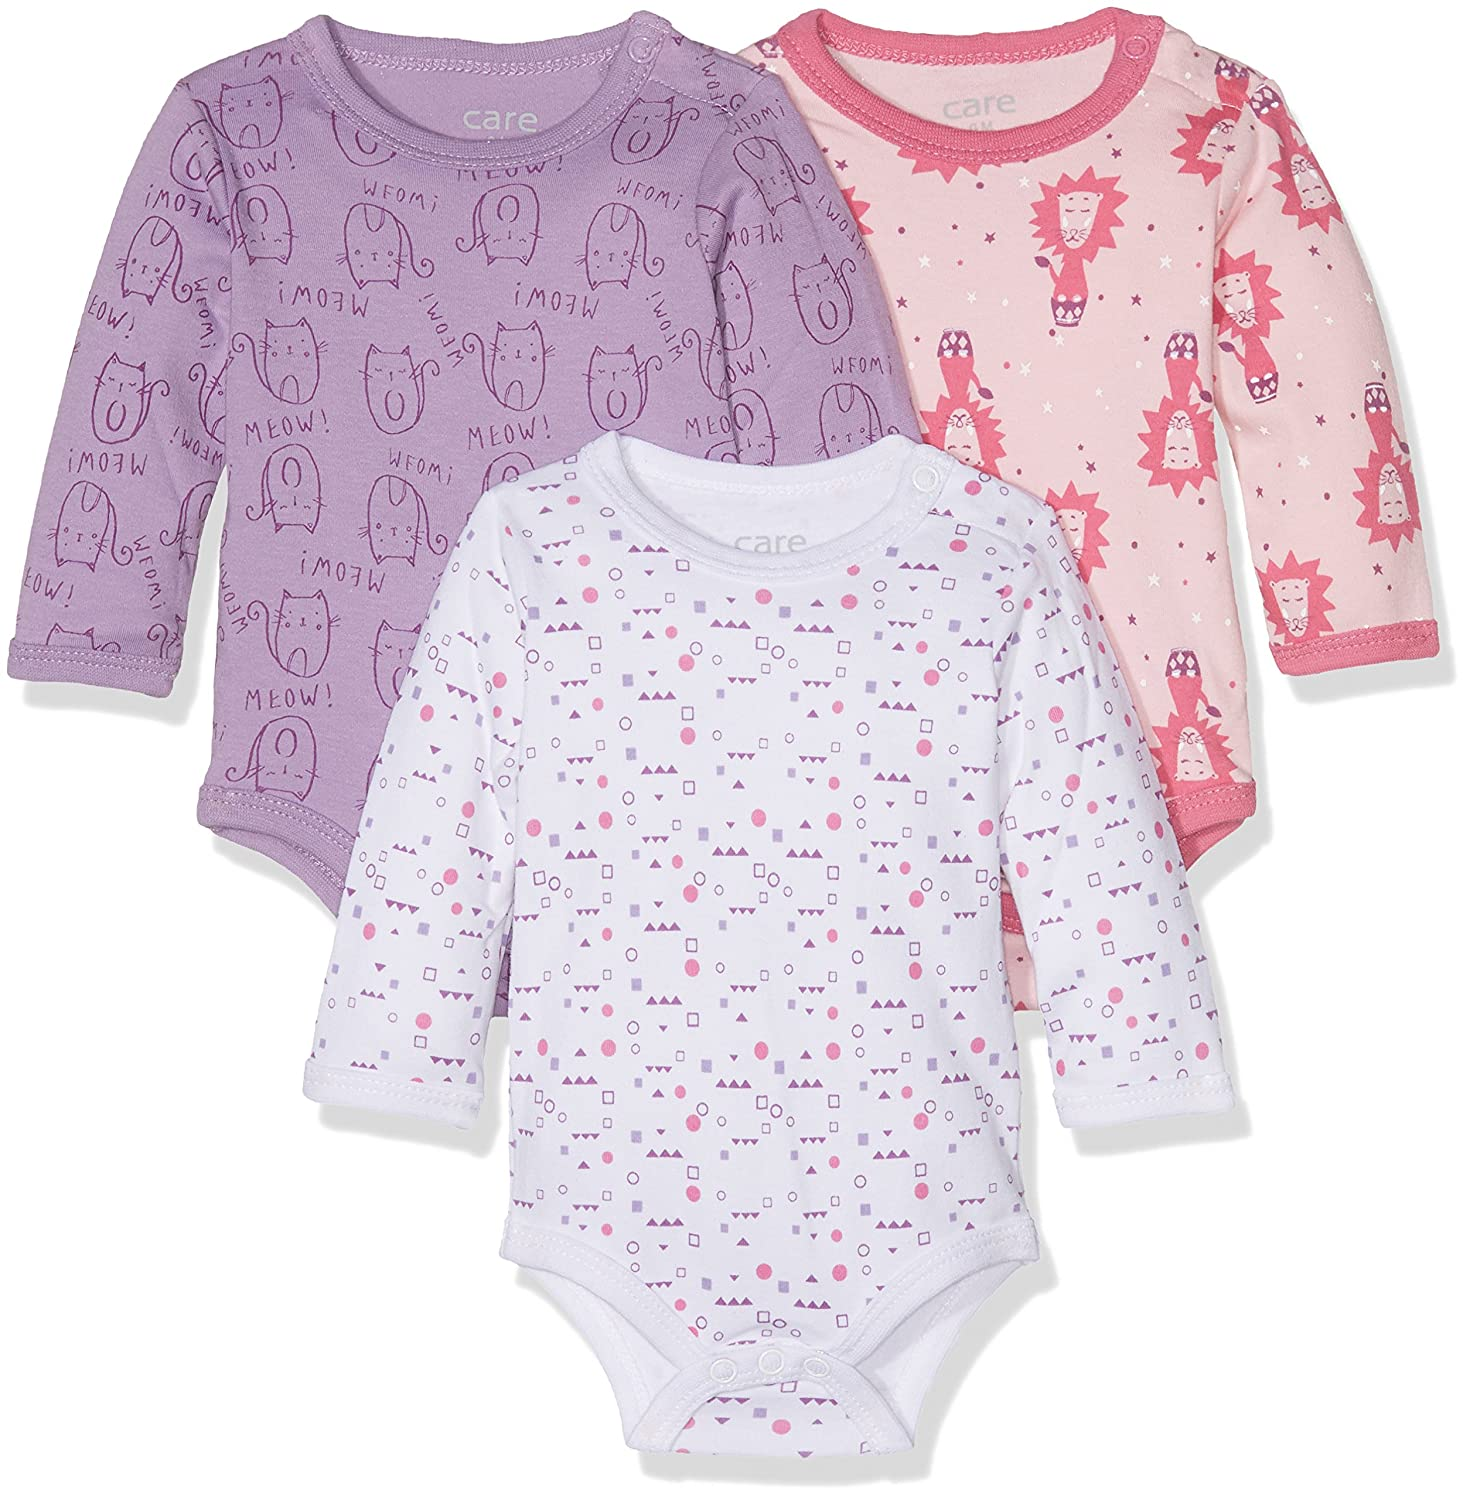 Care Baby Girls Bodysuit, Longsleeve, 3-Pack 4132